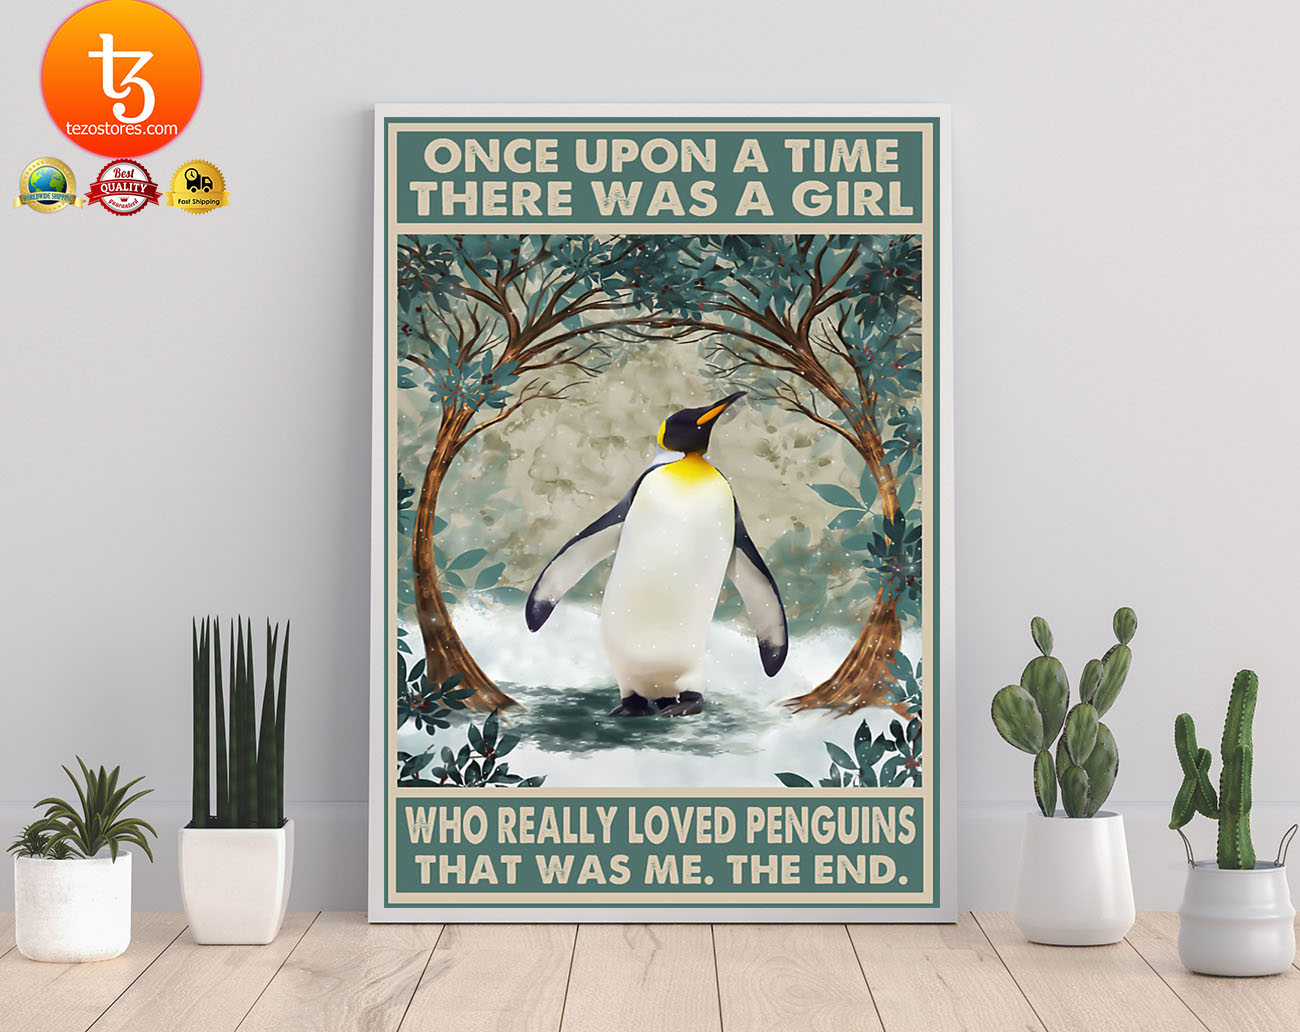 Once upon a time there was a girl who loved penguins poster